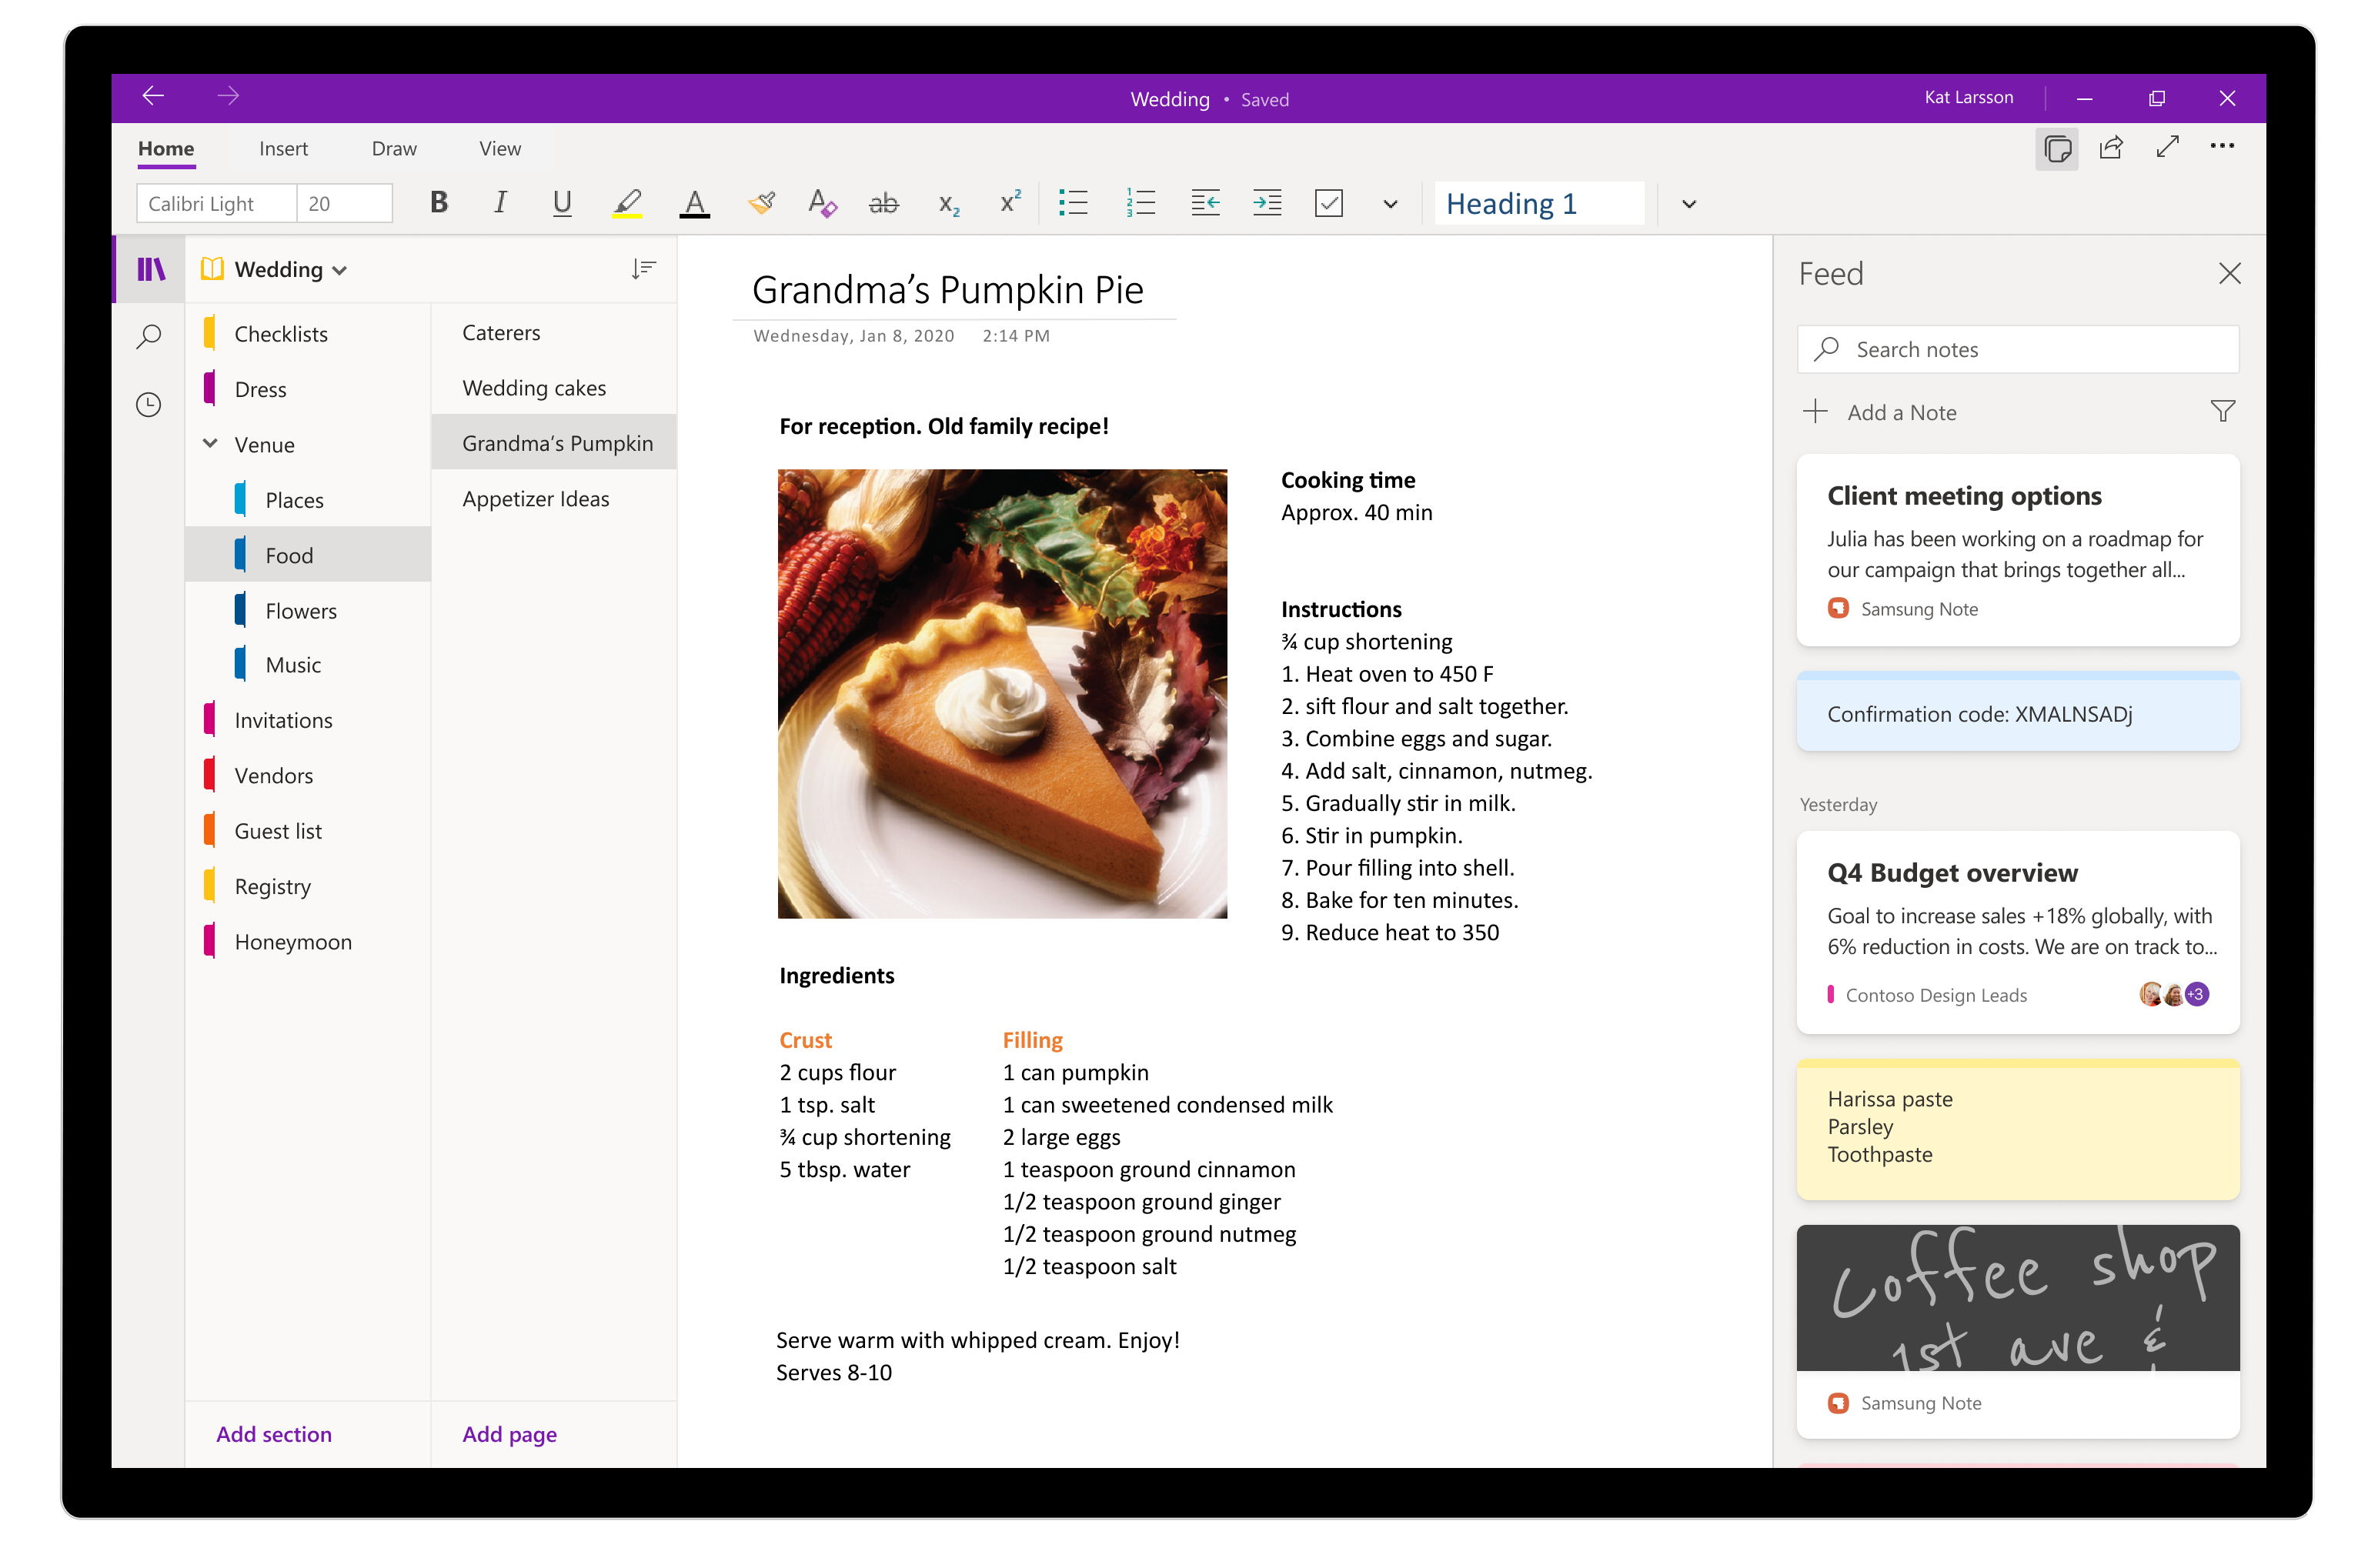 This image shows how you can reference your notes in a OneNote page and capture any new thoughts by creating a Sticky Note in your feed without leaving OneNote.